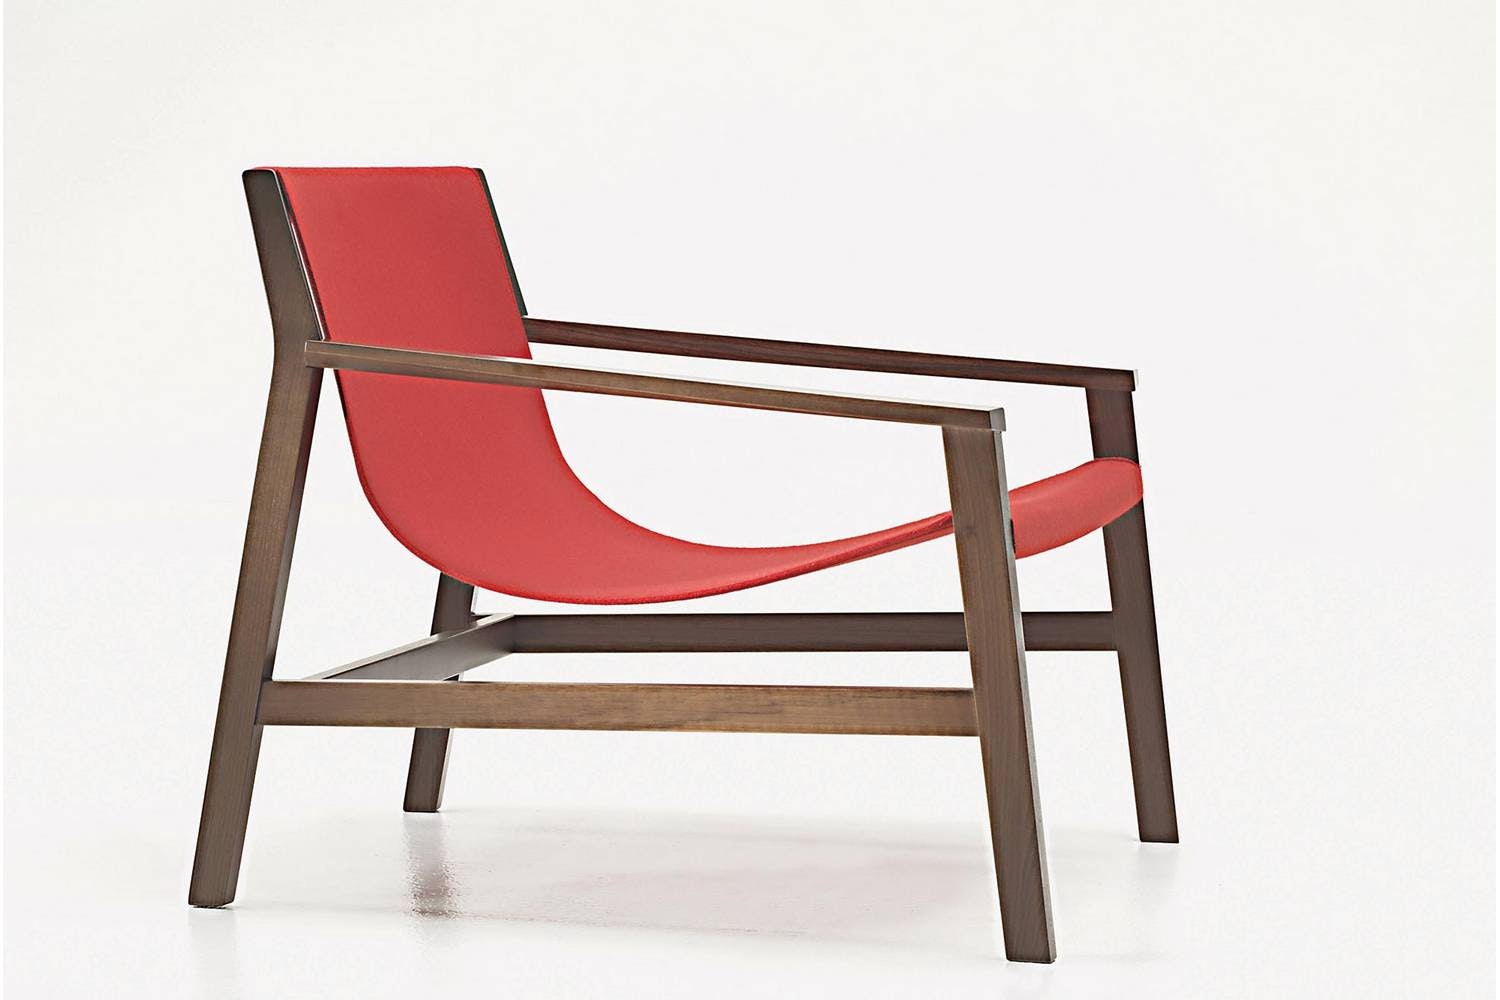 Sdraio Armchair by Piero Lissoni for Living Divani